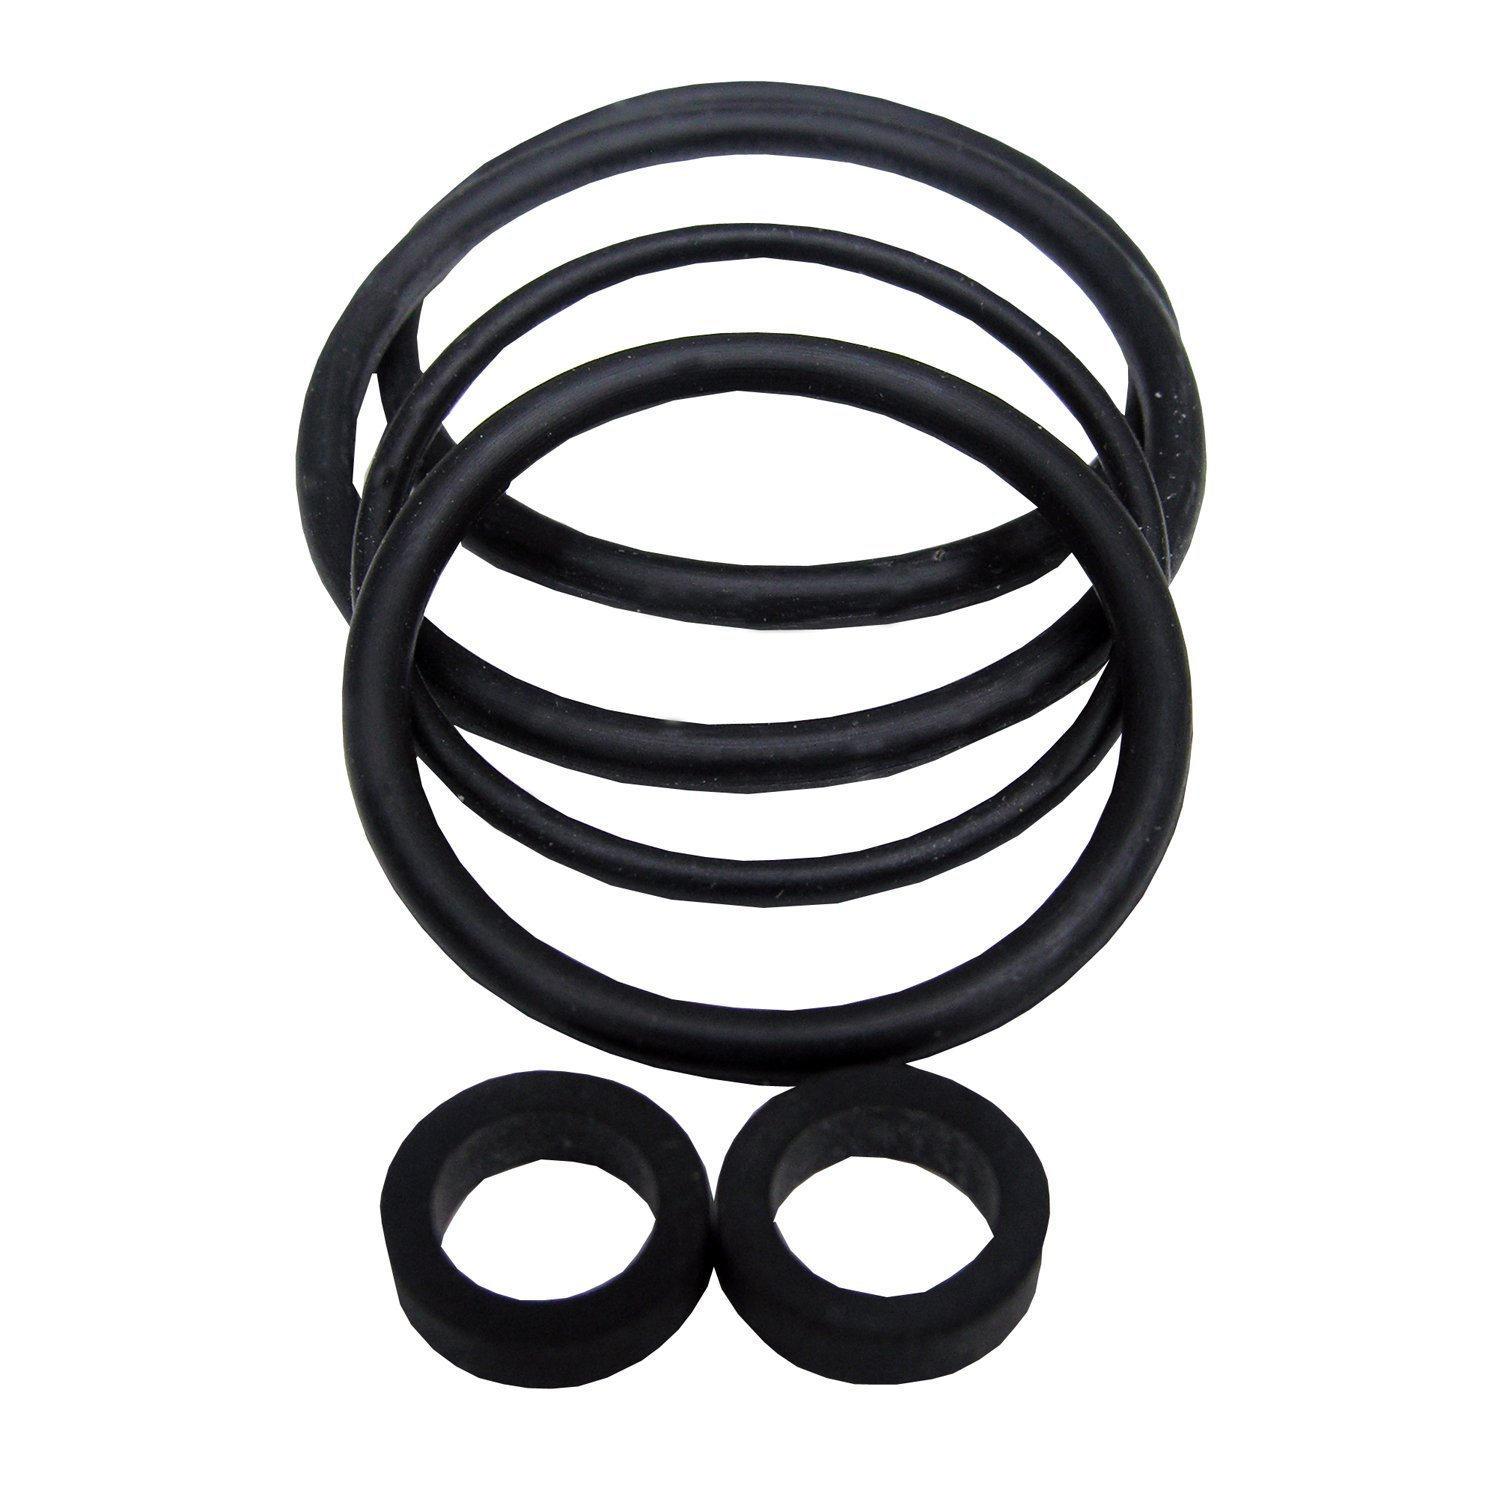 LASCO 0-3093 Valley Faucet O-Rings and Port Seals for New Style ...